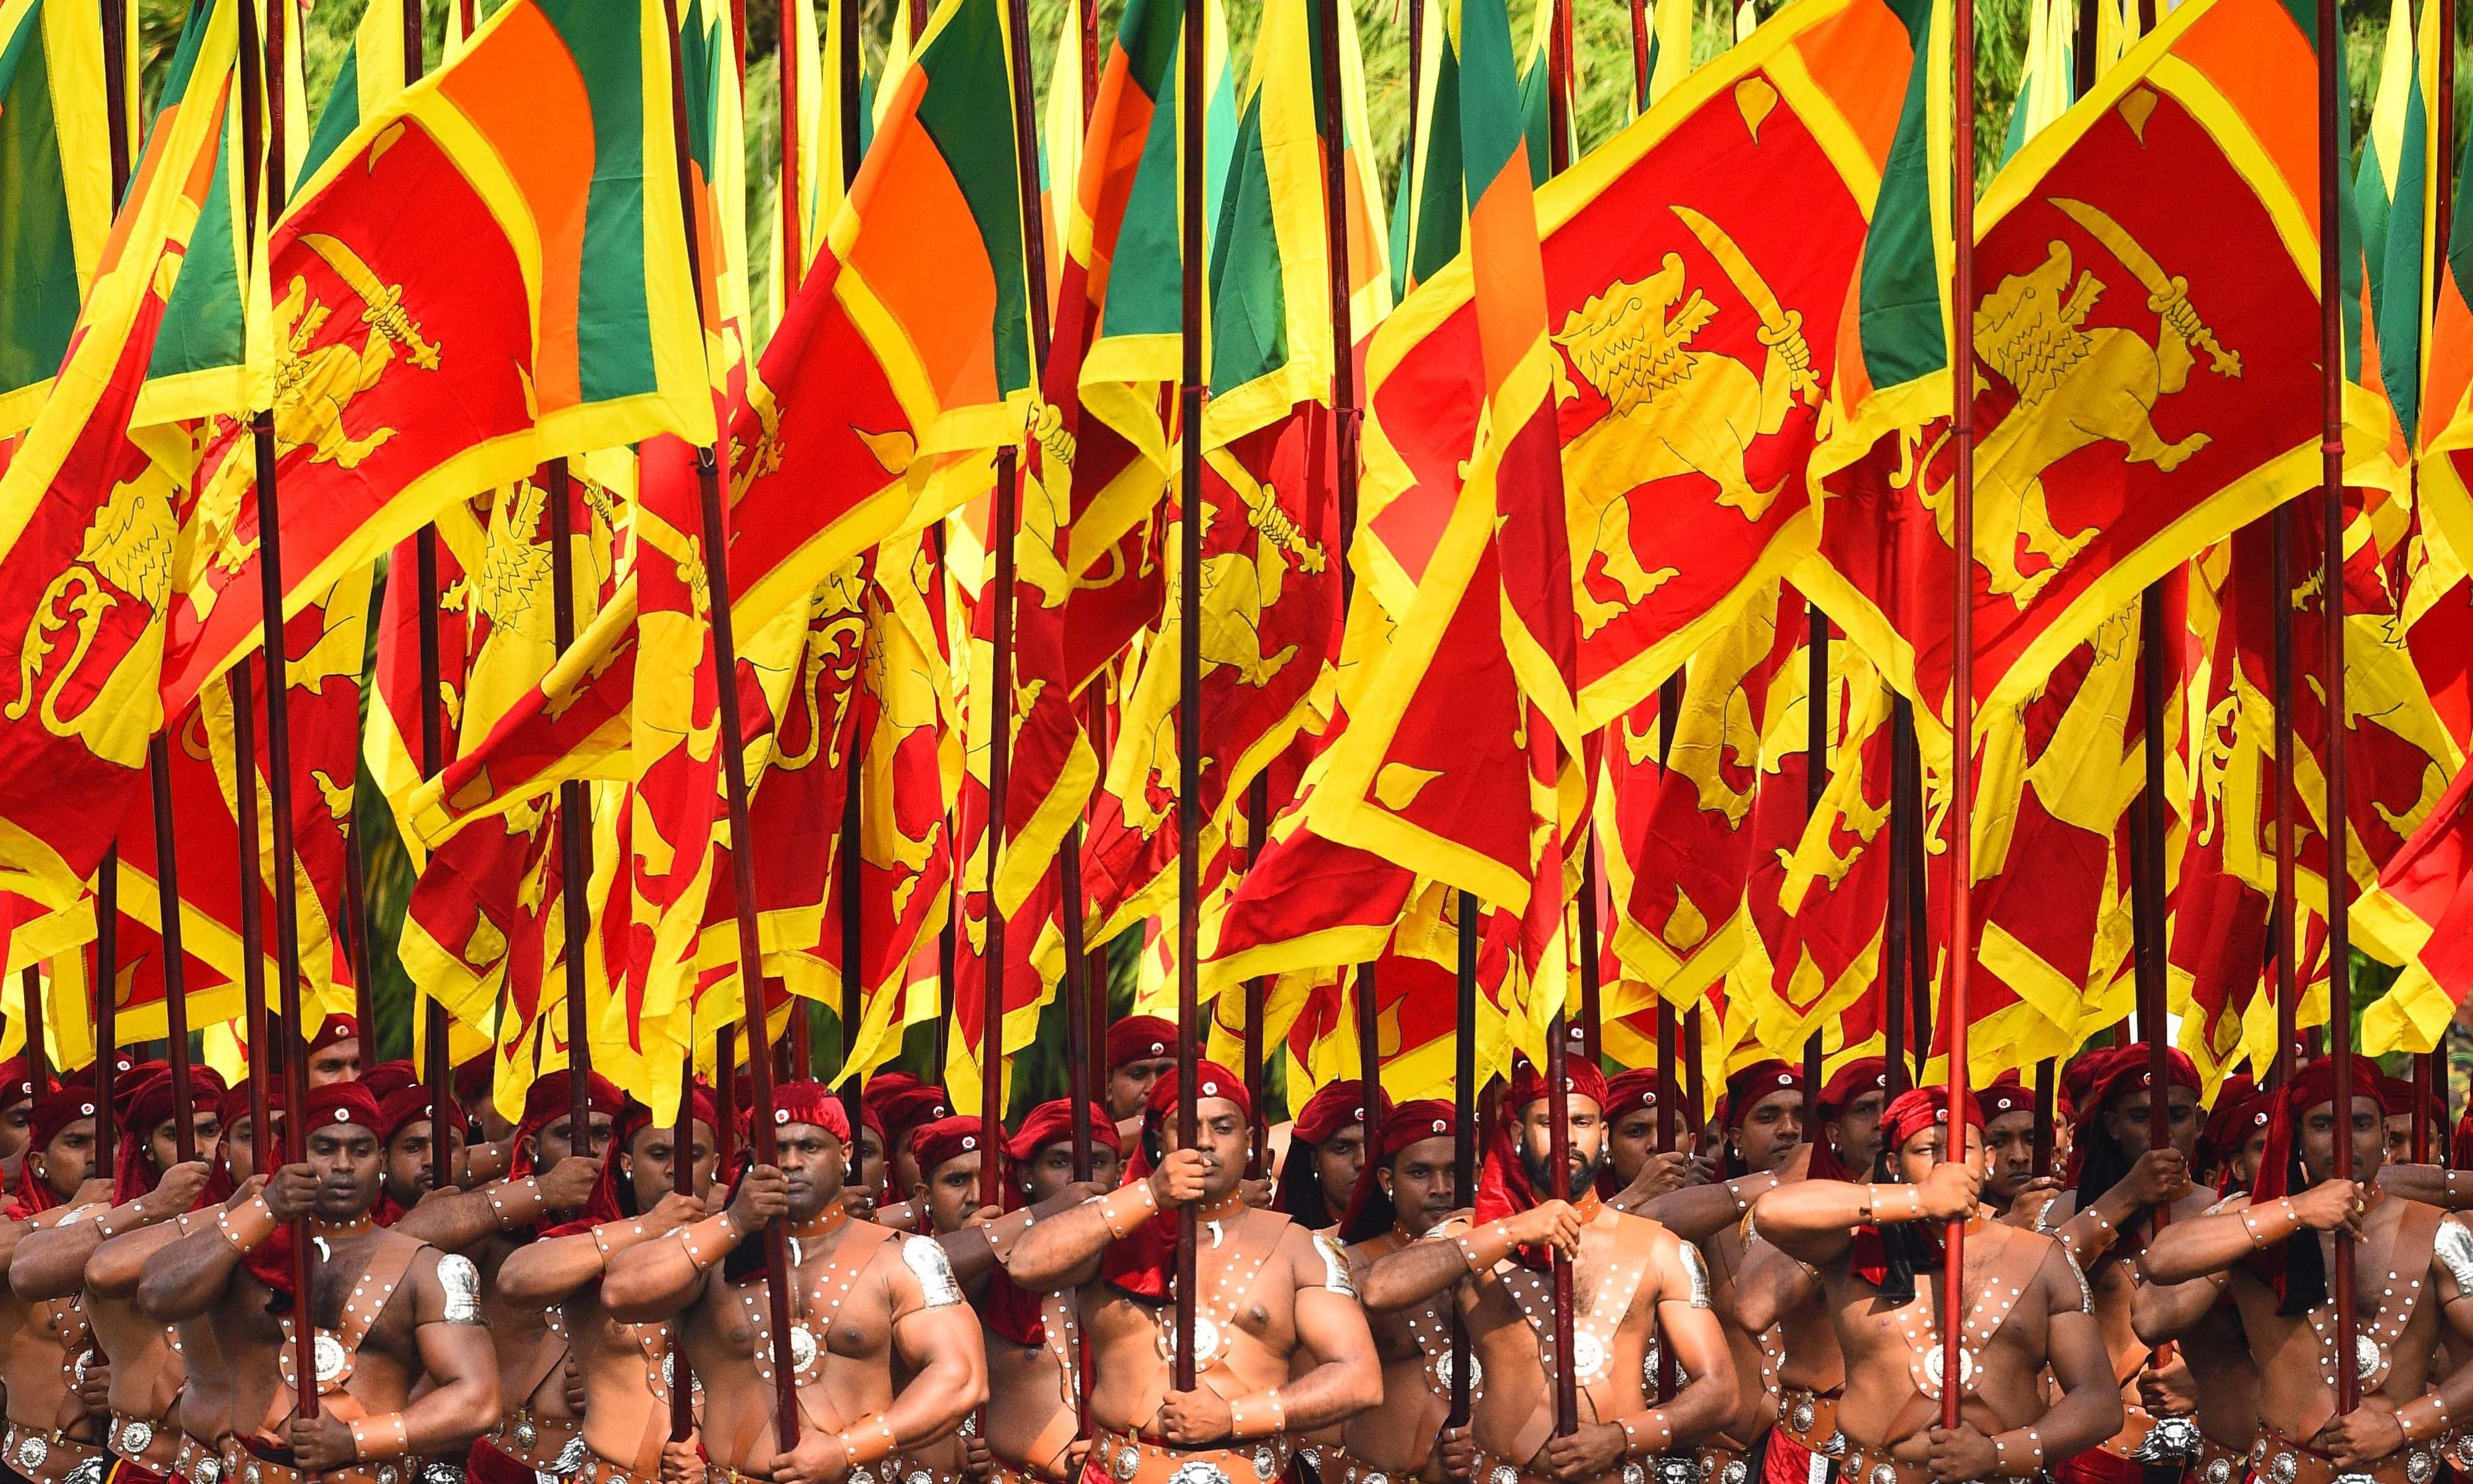 Sri Lankan military personnel march in their traditional dress holding national flags during the country's 72nd Independence Day celebrations in Colombo on Feb 4. — AFP